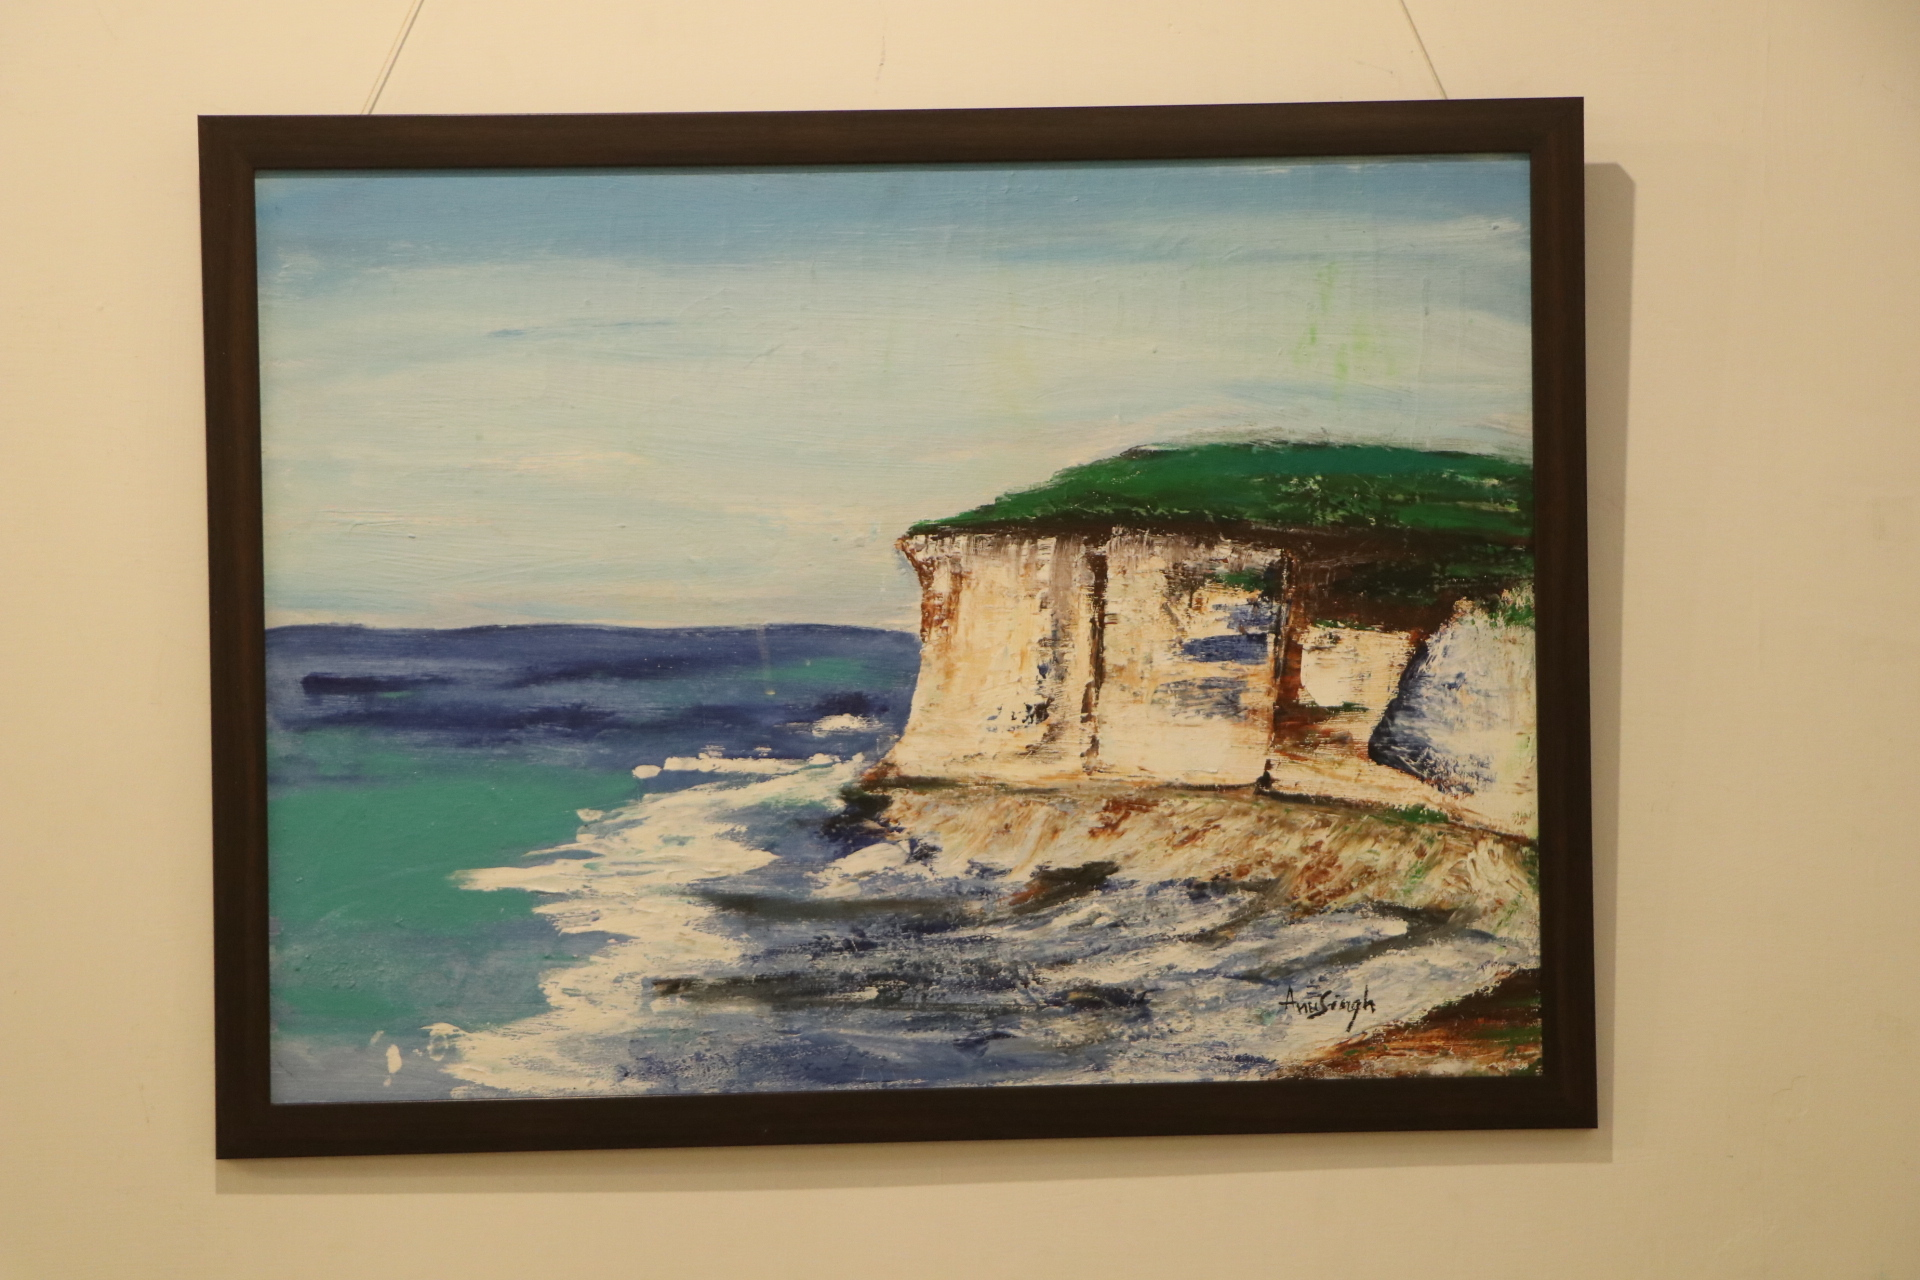 Psychological Counselor Exhibits Paintings On Nature